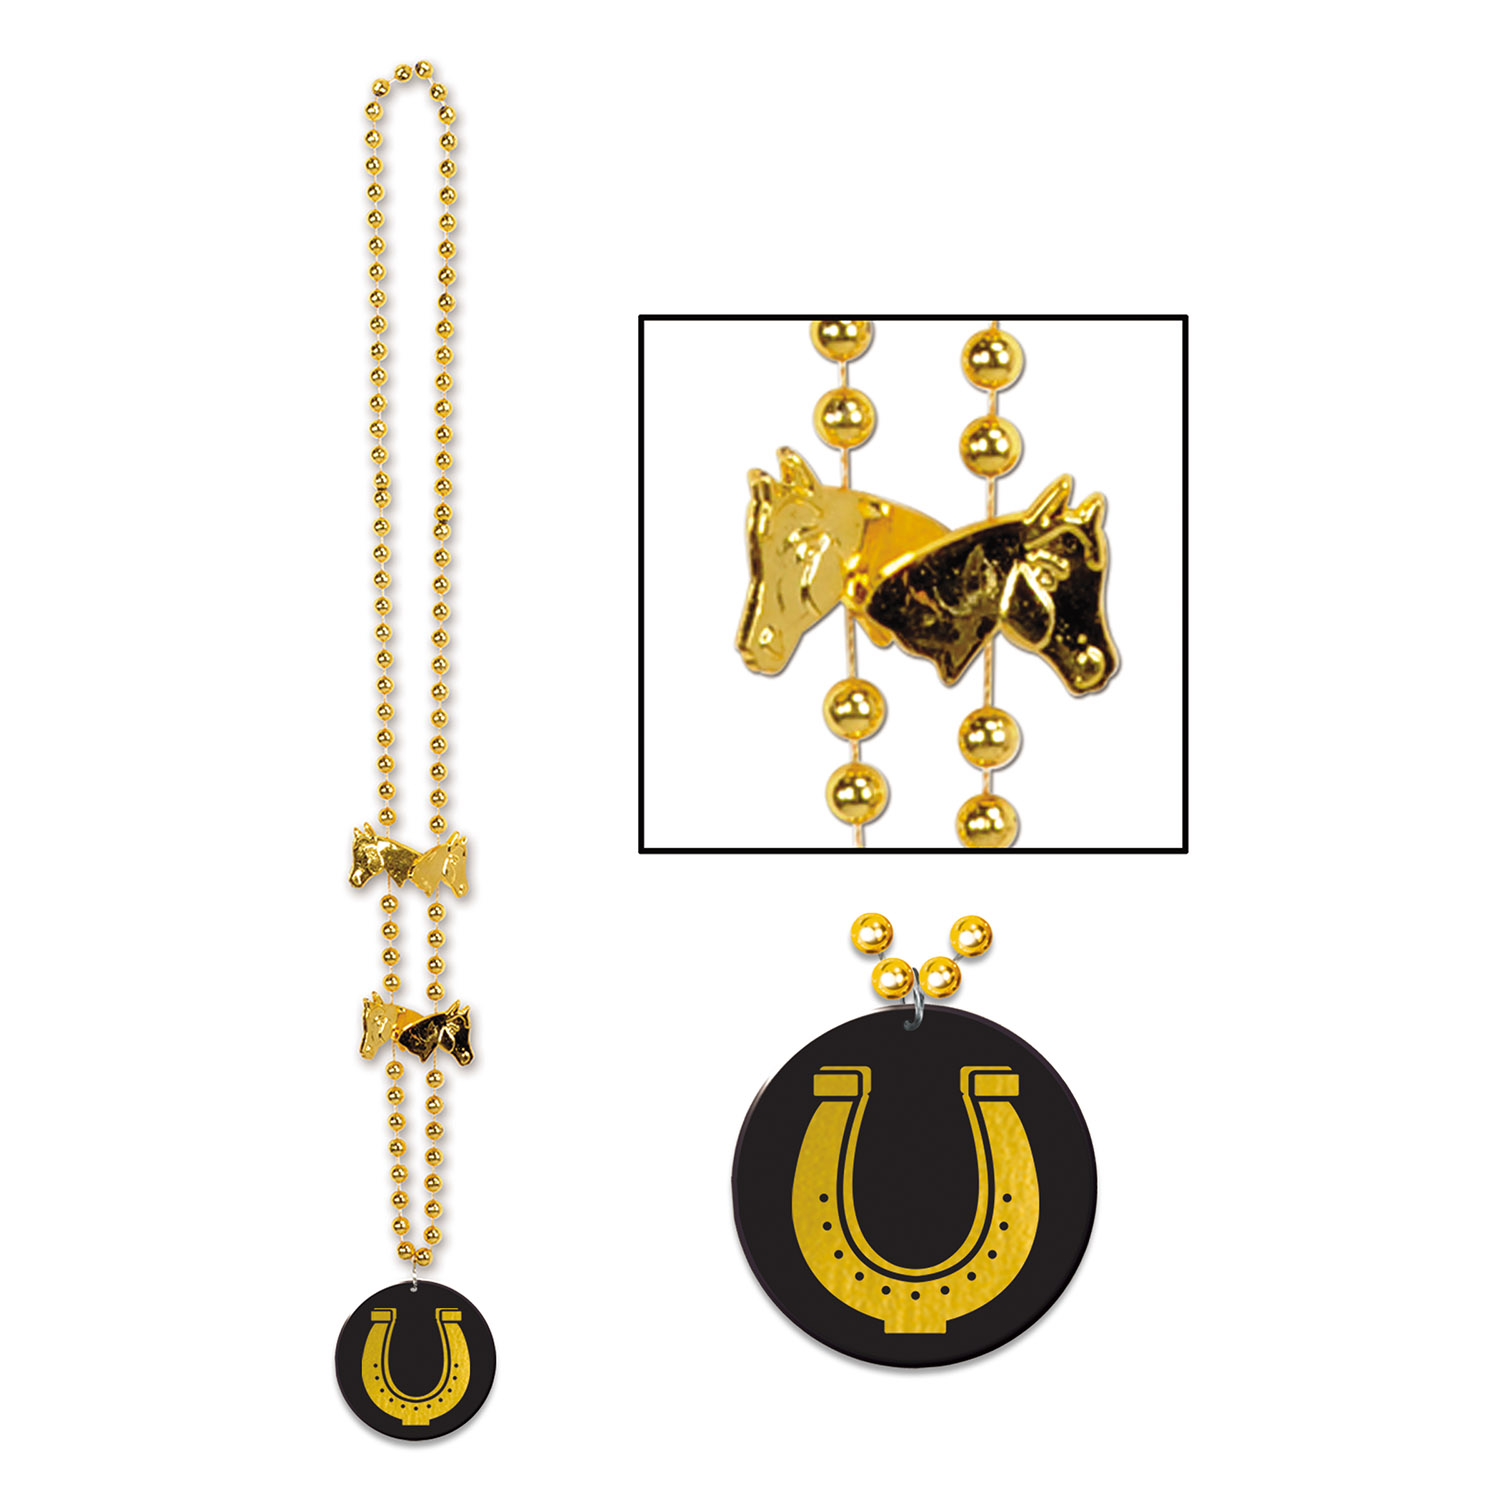 Beads w/Horseshoe Medallion (Pack of 12) Beads with Horseshoe Medallion, party favor, derby day, horse race, wholesale, inexpensive, bulk